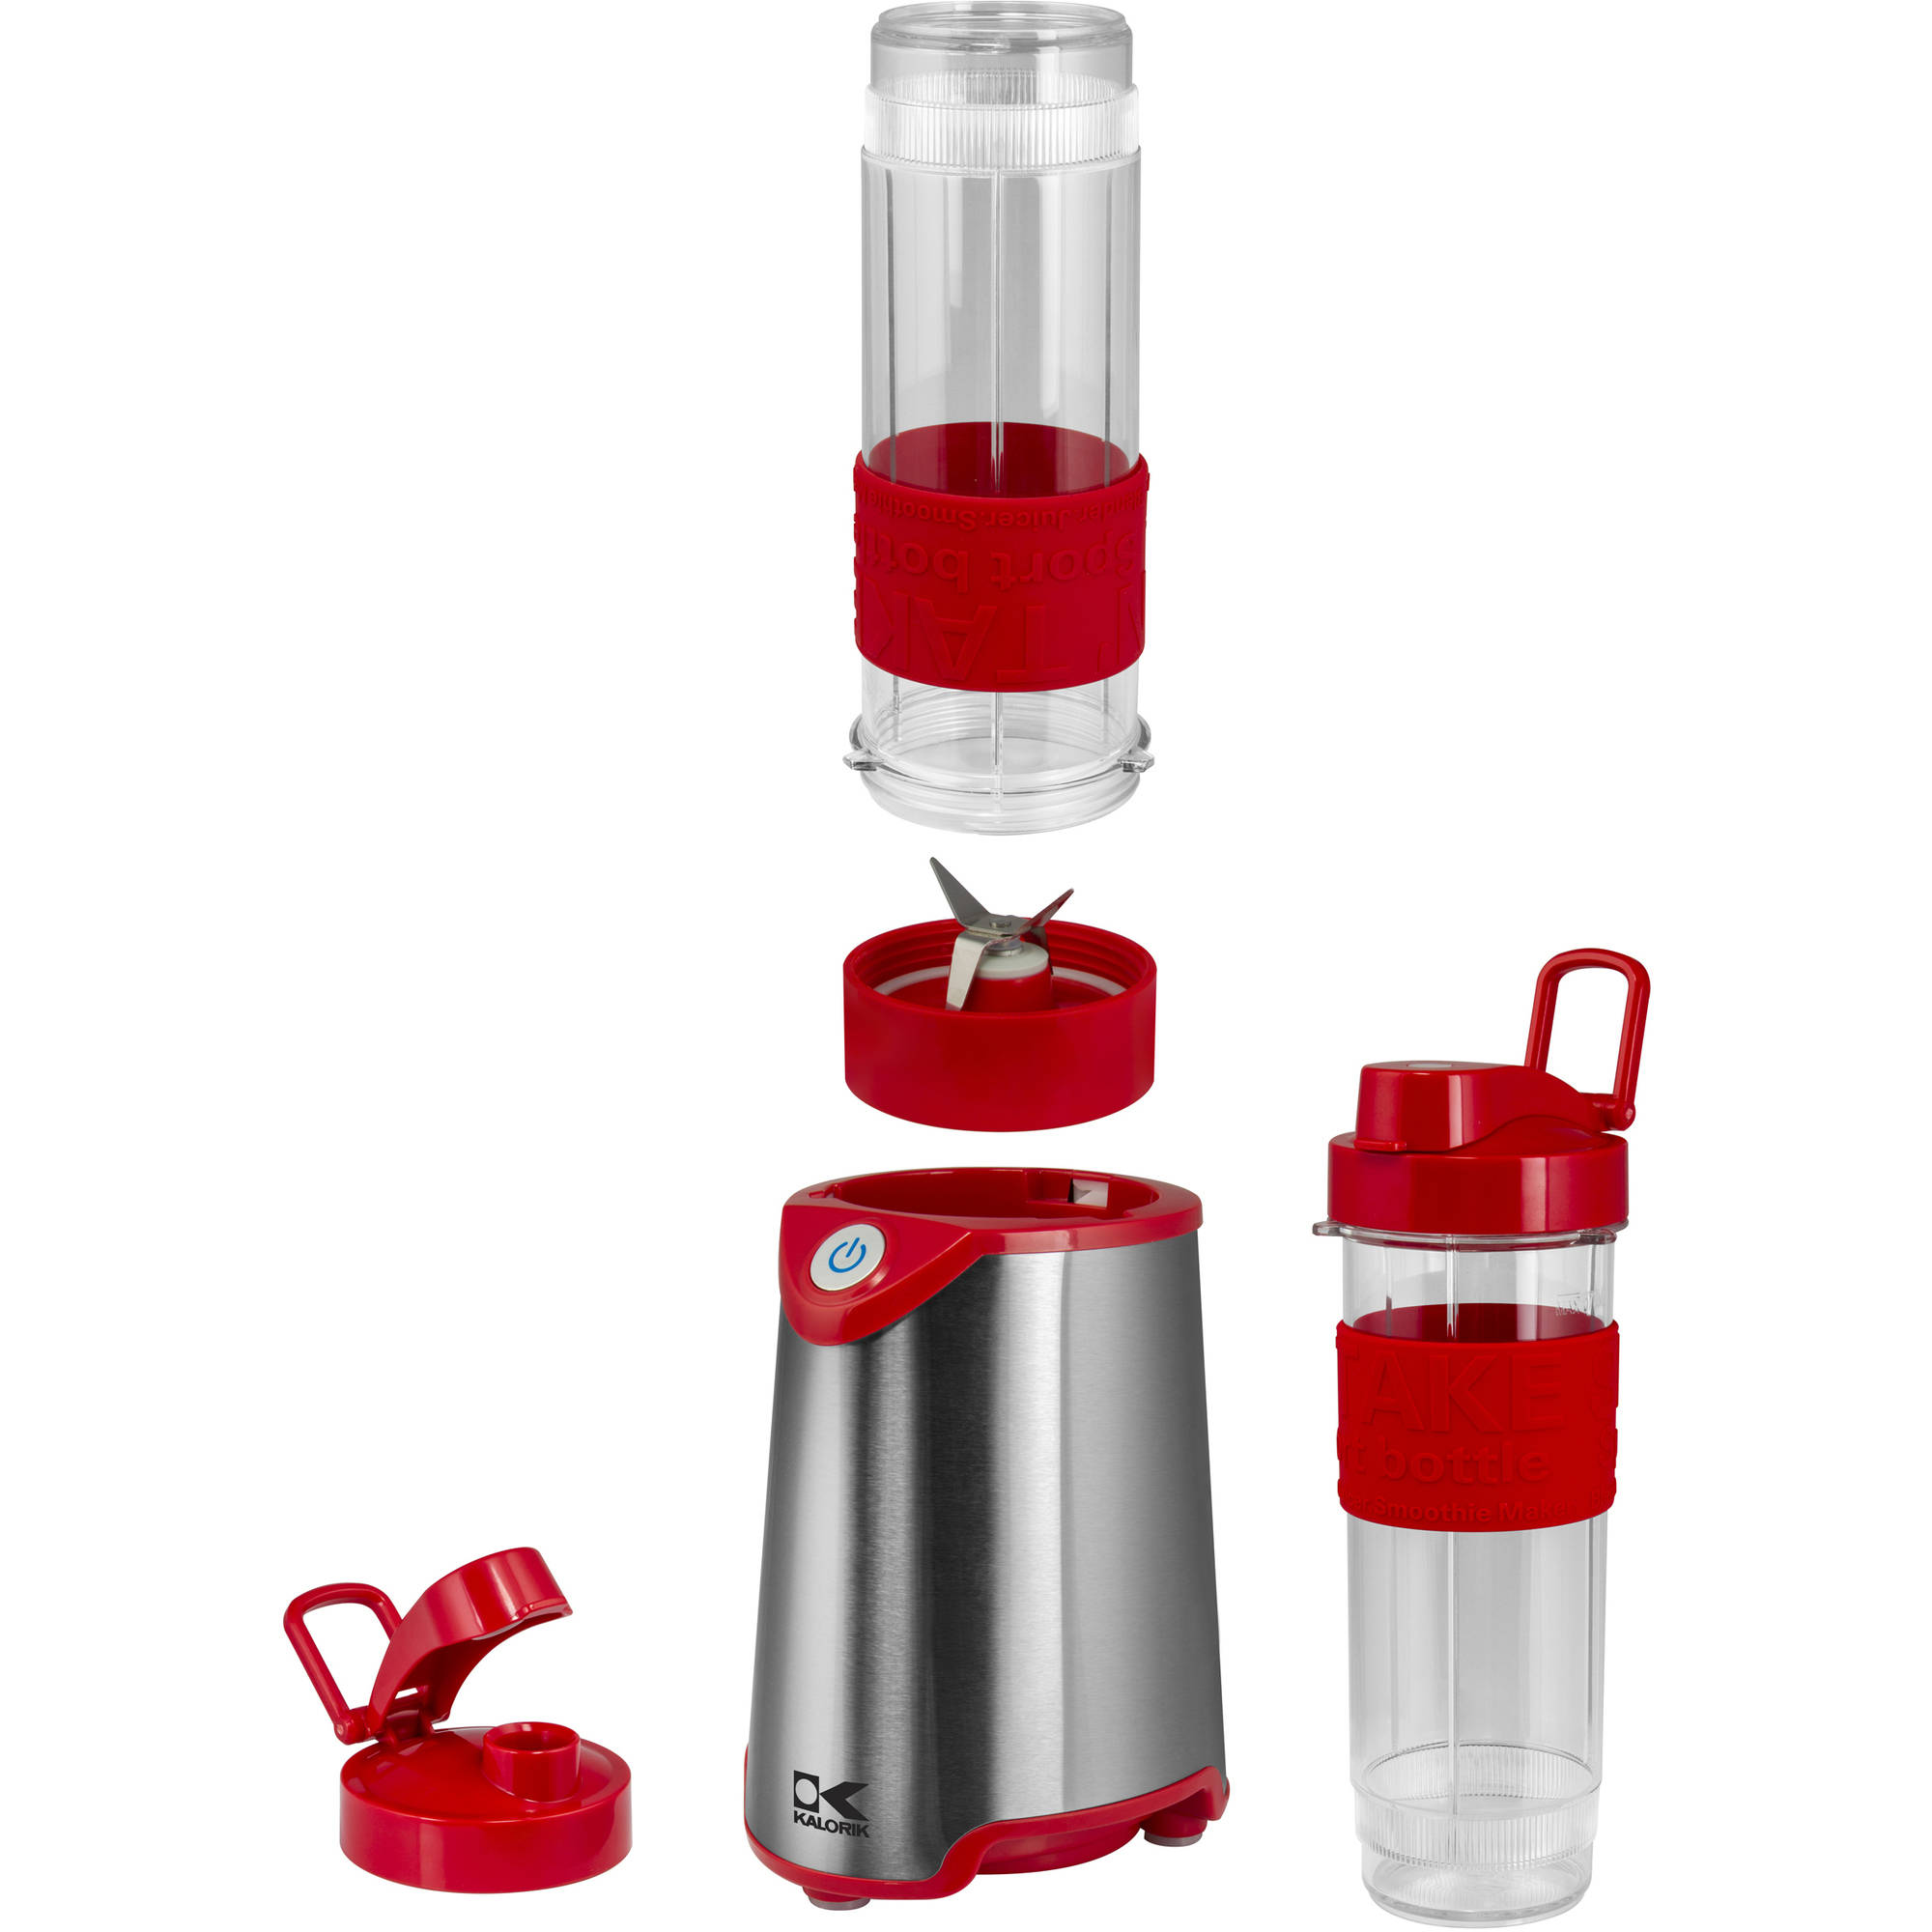 Kalorik Personal Professional Blender, Single Serve BPA-Free Sport Bottle Blender, Red